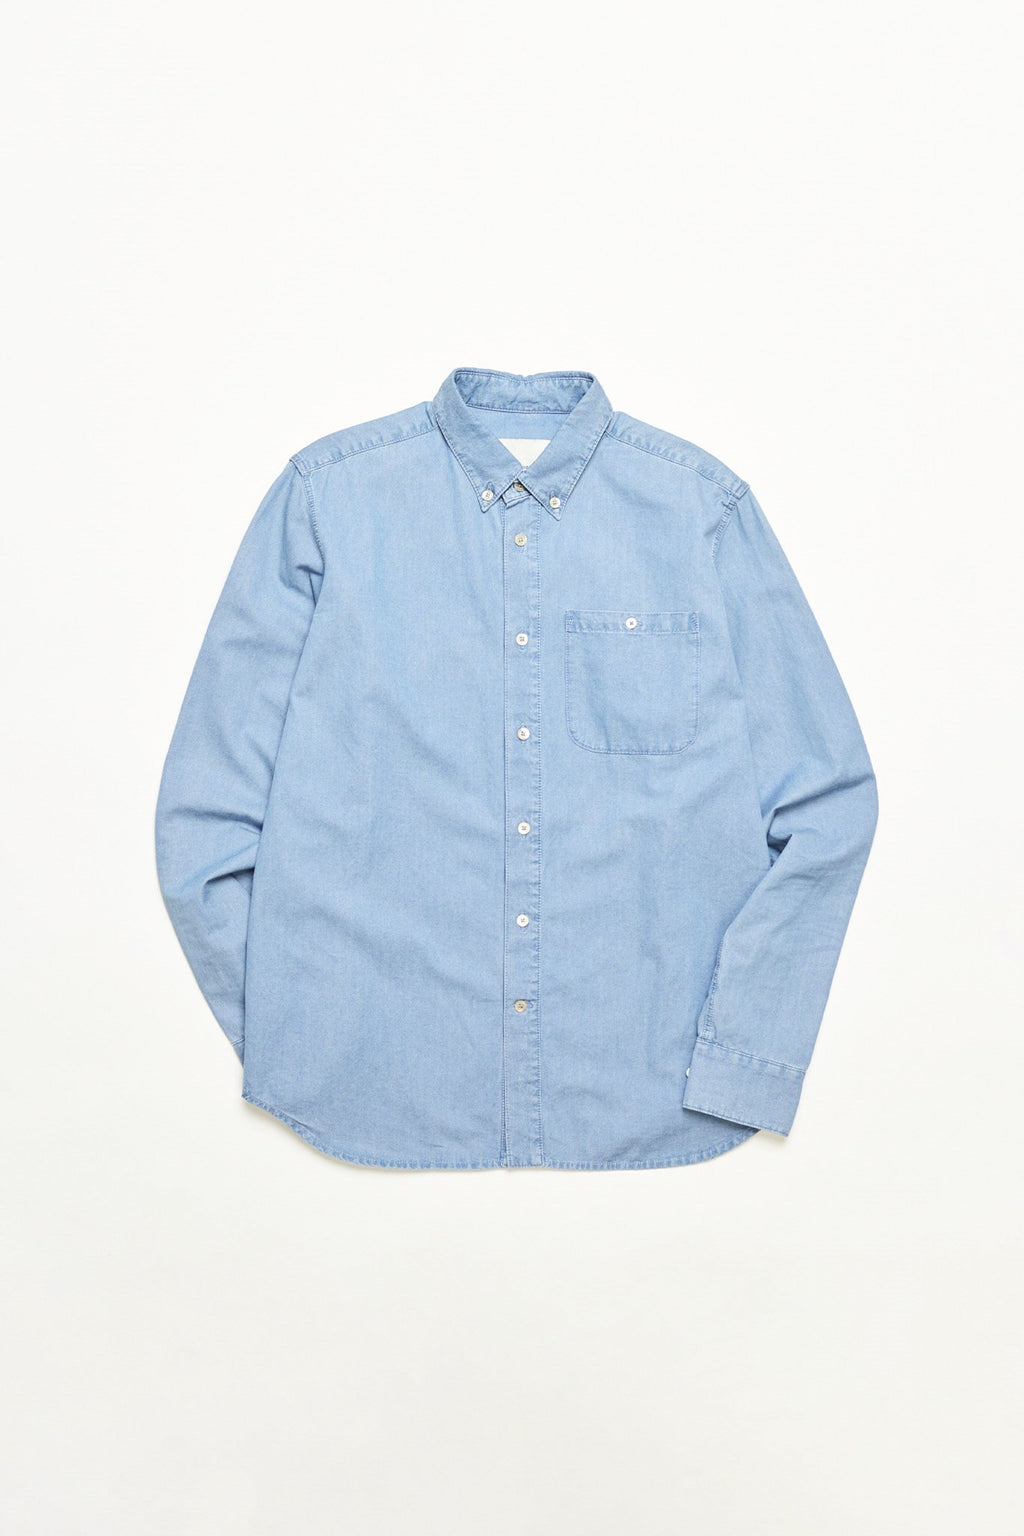 A-Kind-Of-Guise-Permanents-Button-Down